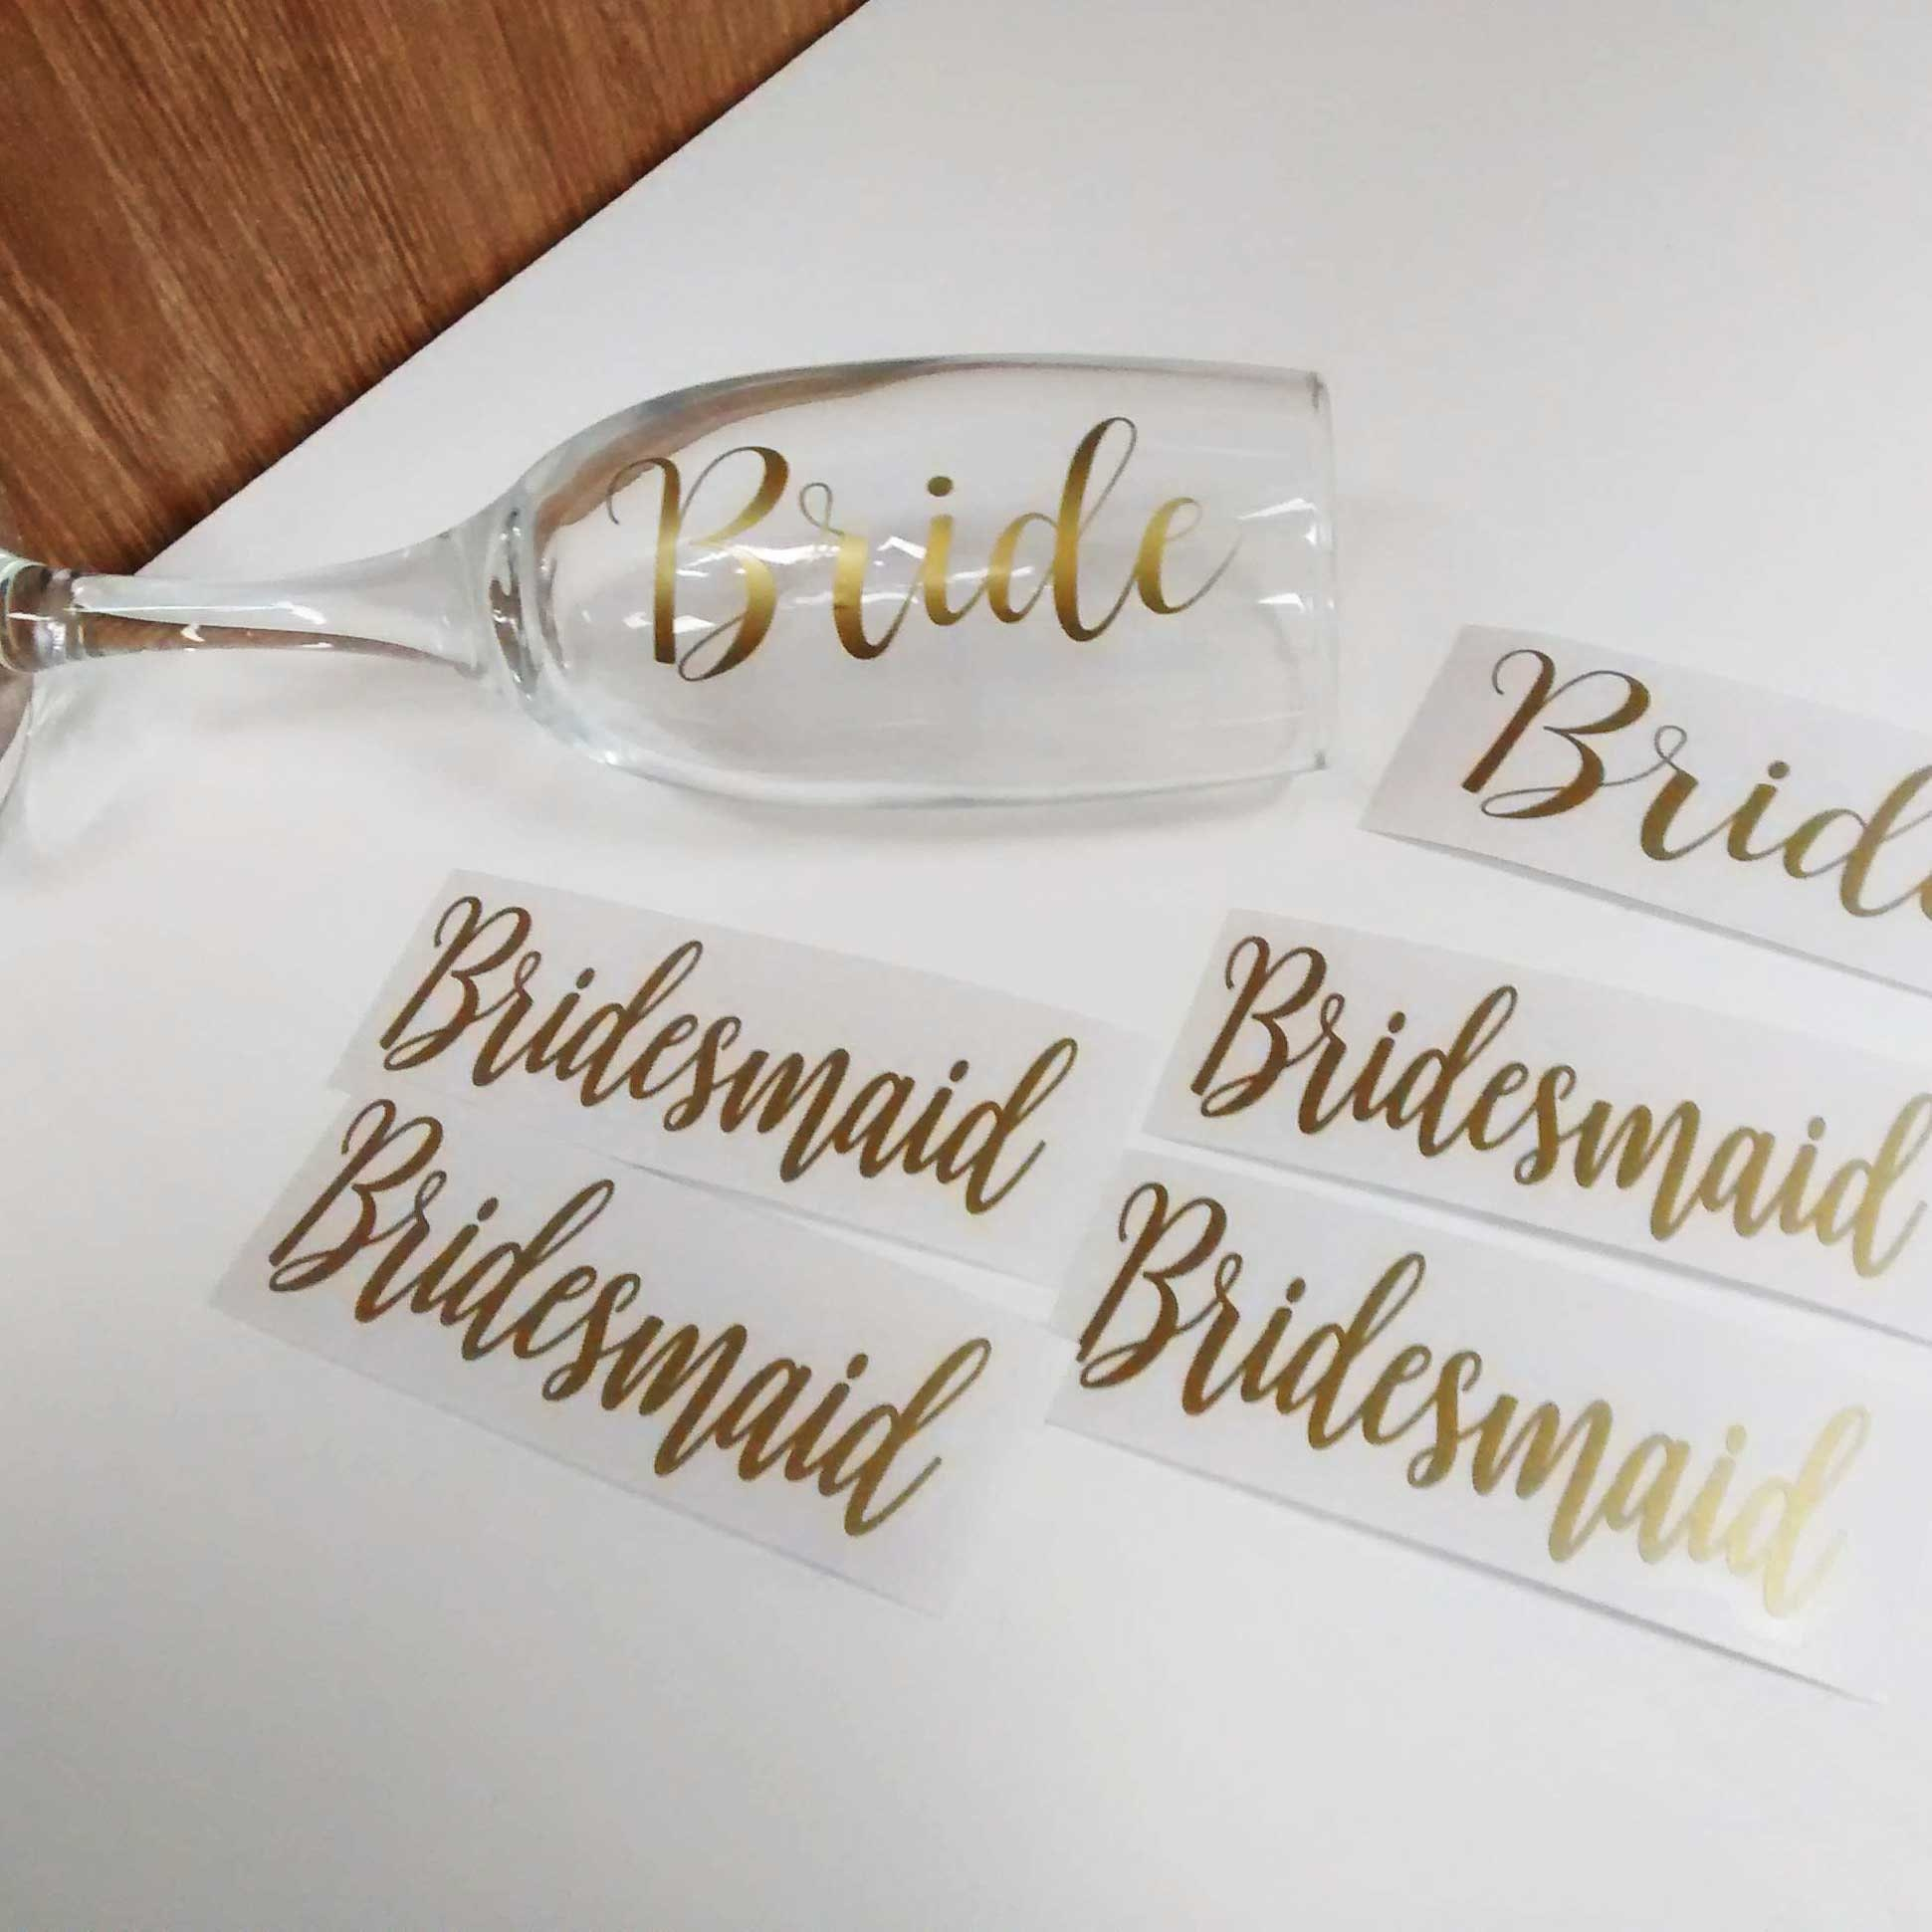 wedding favour stickers glassware decal labels personalise a bridesmaid gift Metallic copper vinyl decal name stickers